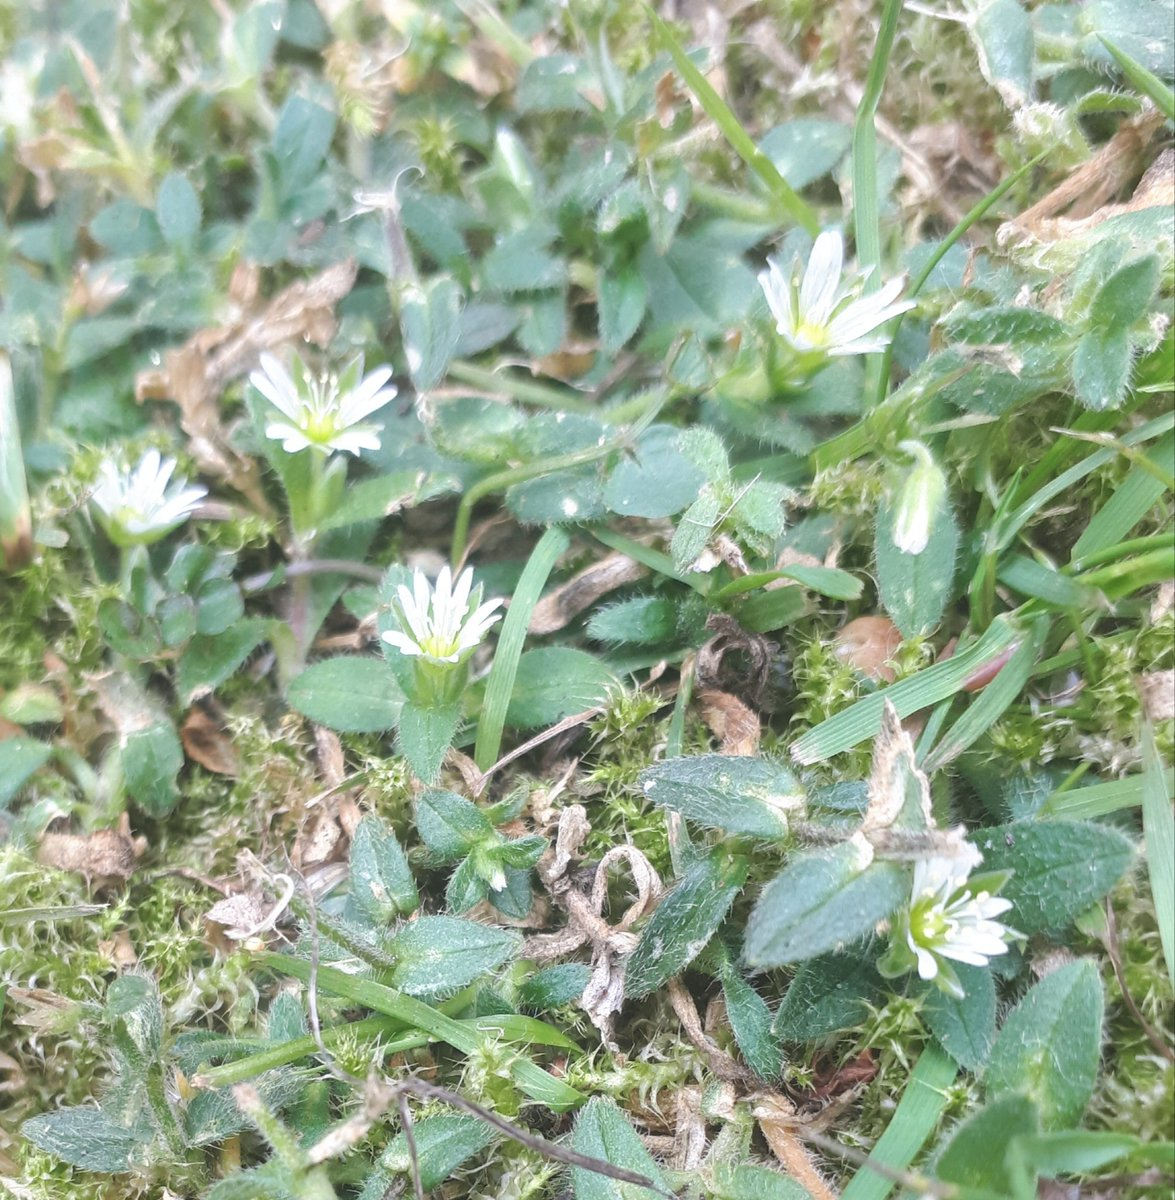 Groweatgift on twitter the evil plant killers came round to mow i love the feisty flowers that survive regardless self heal daisies chickweed and a new tiny white one i dont know but am very happy about mightylinksfo